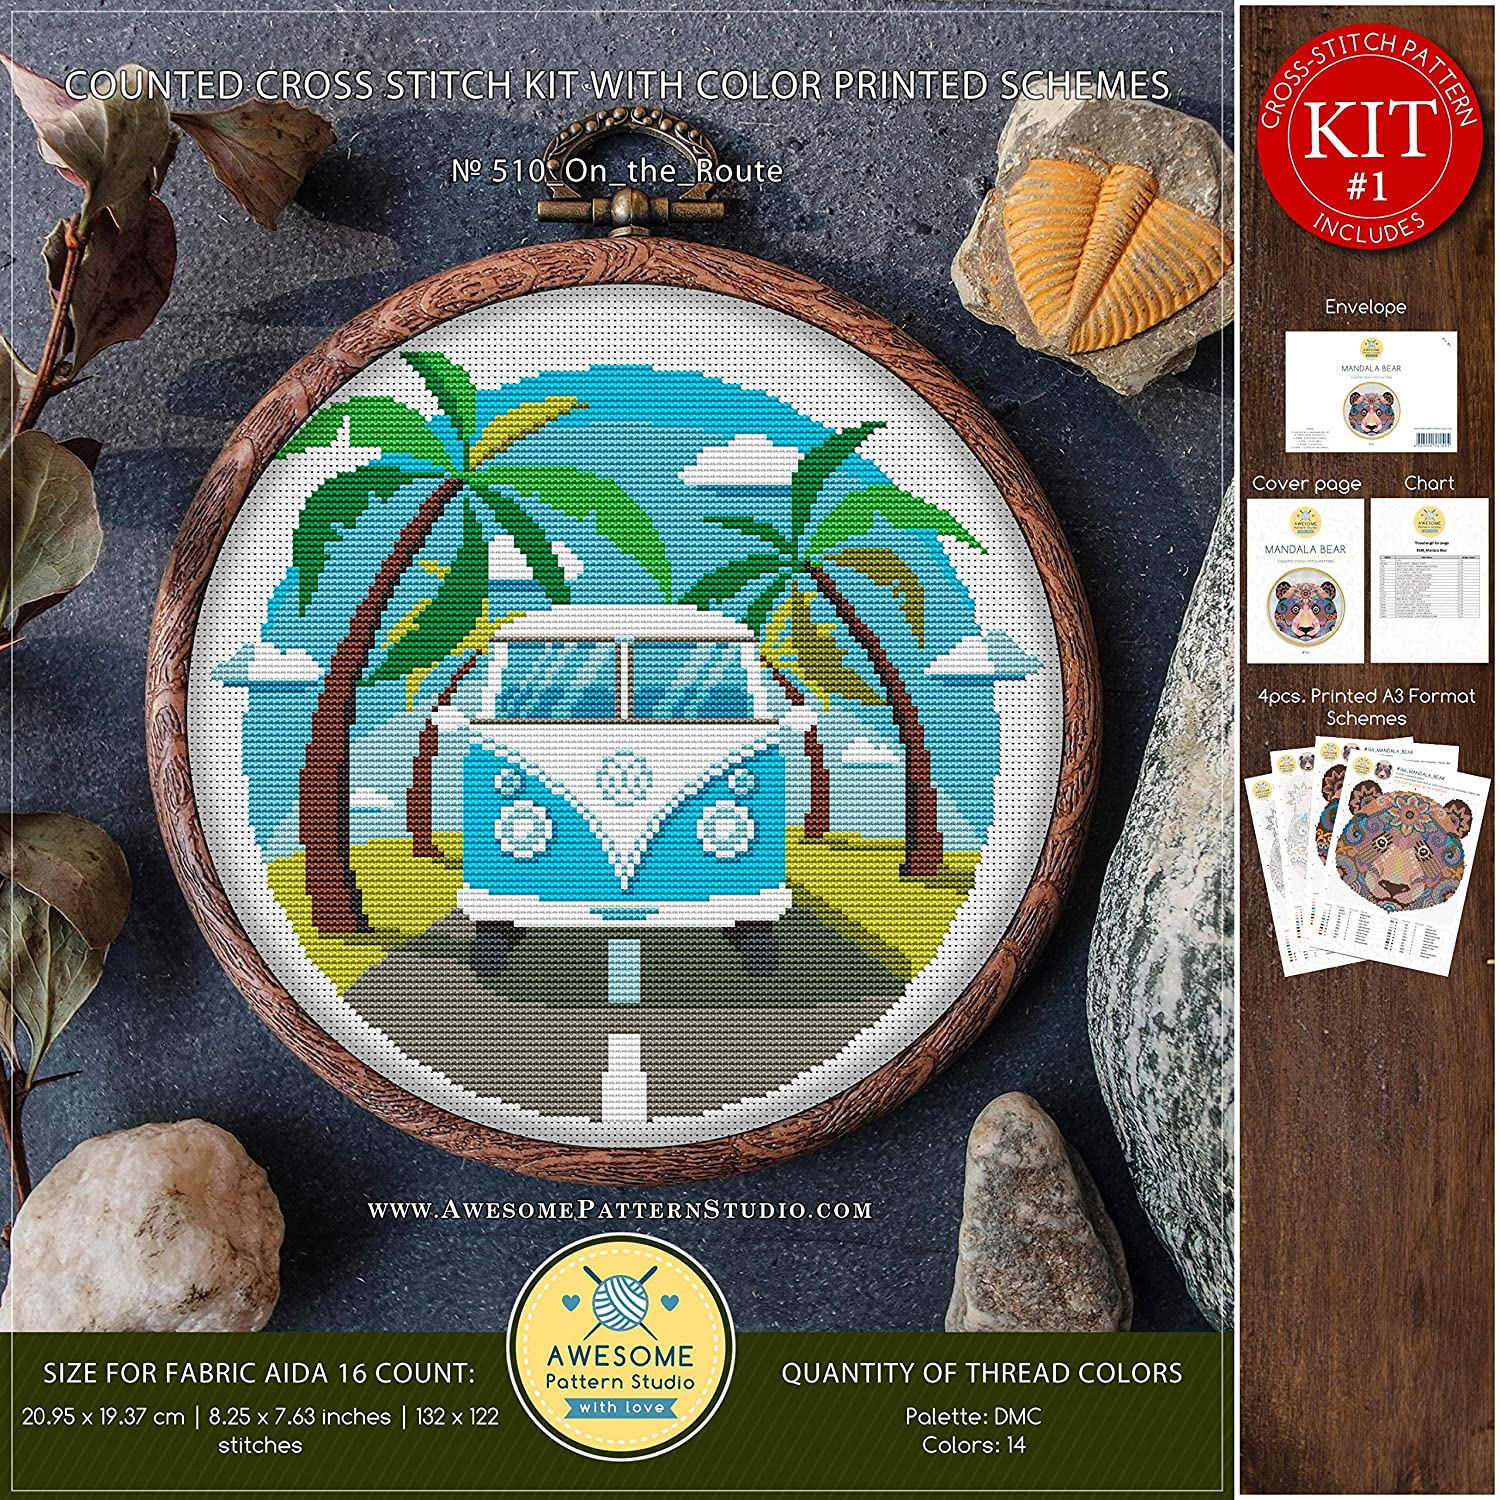 Stitching Cross Stitch World On The Route #K510 Embroidery Kit Needlepoint Cross Designs Embroidery Designs